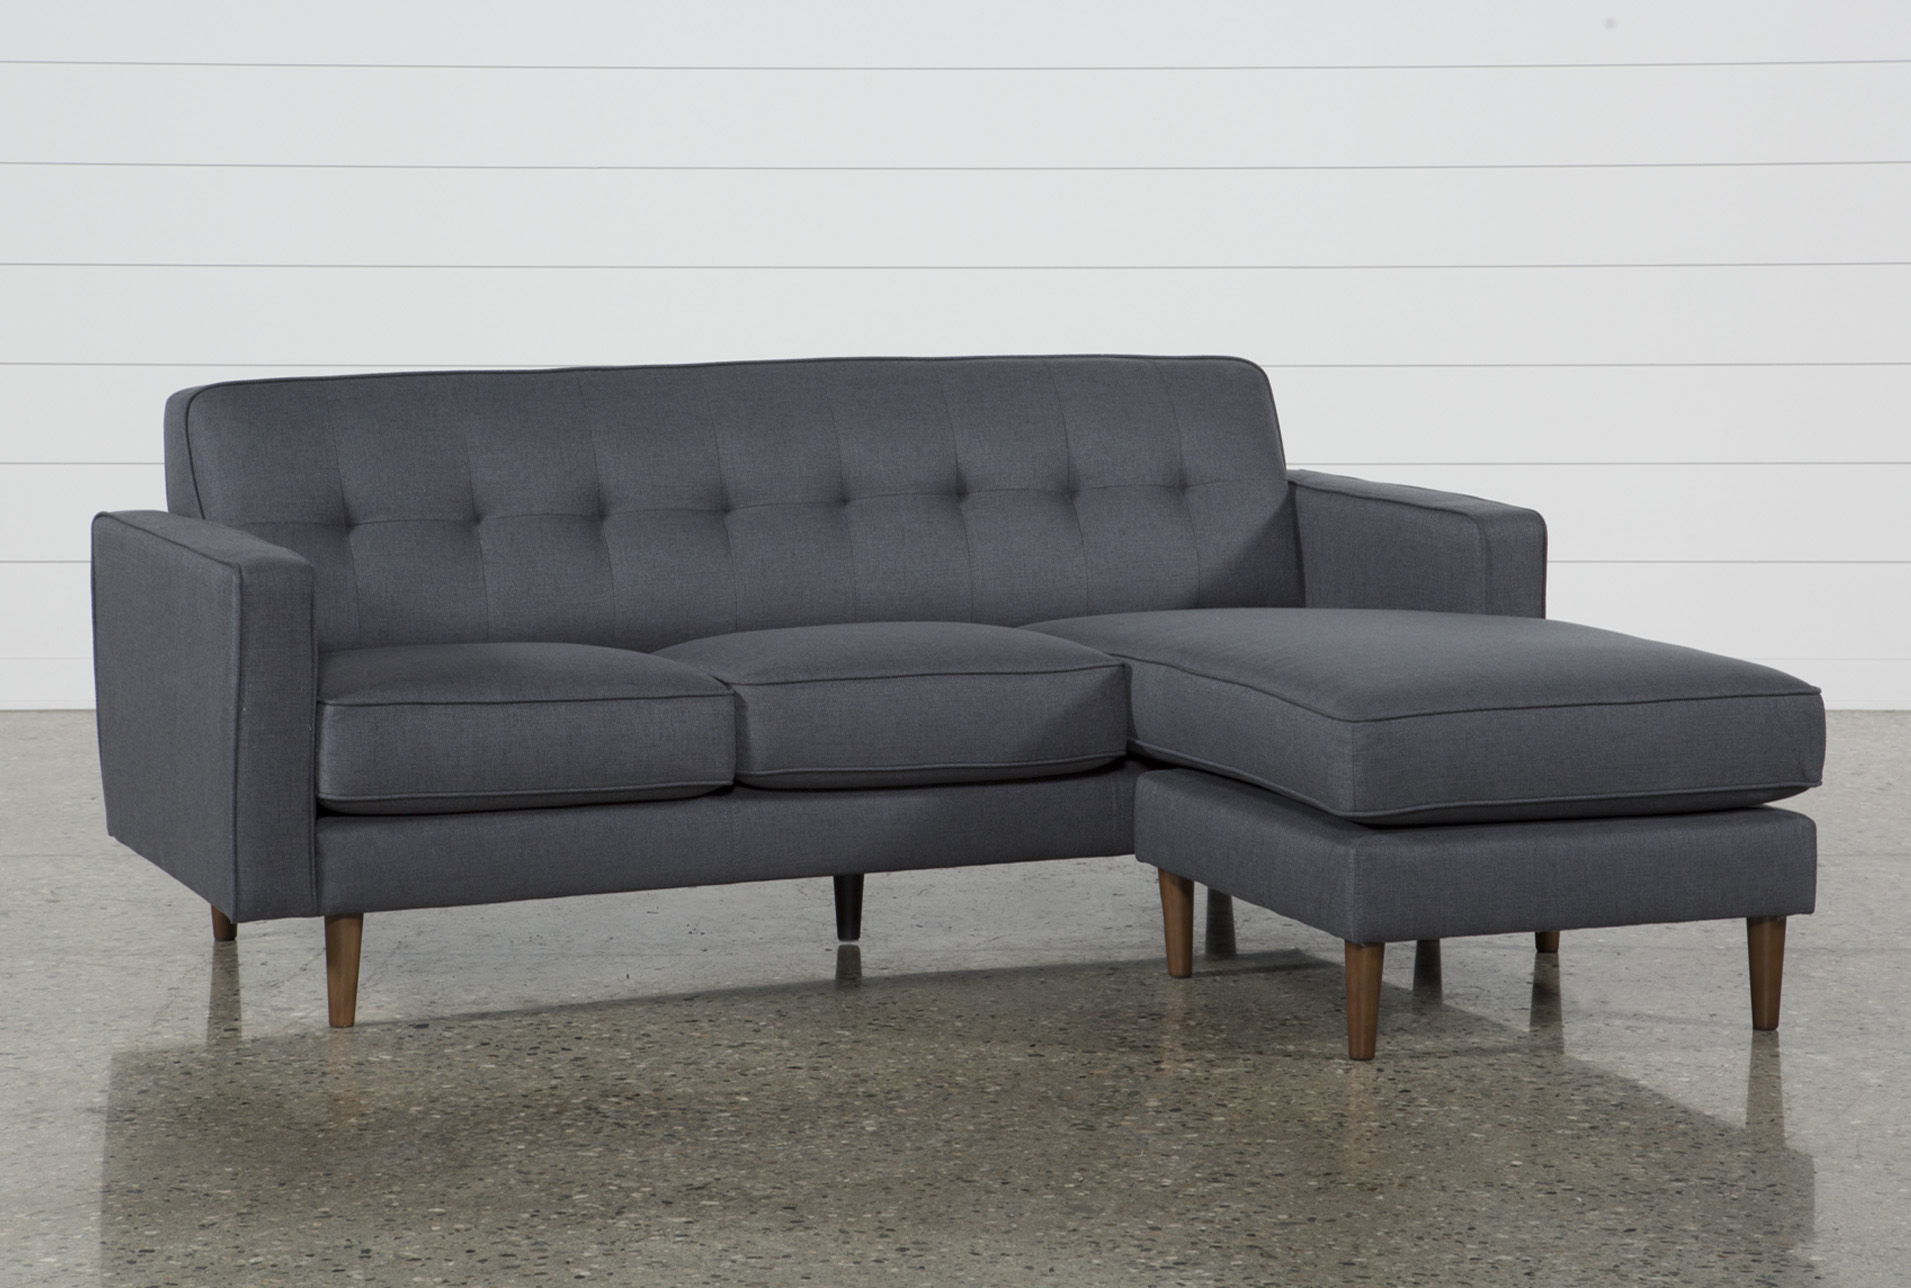 London Dark Grey Reversible Sofa Chaise (Qty: 1) has been successfully  added to your Cart.